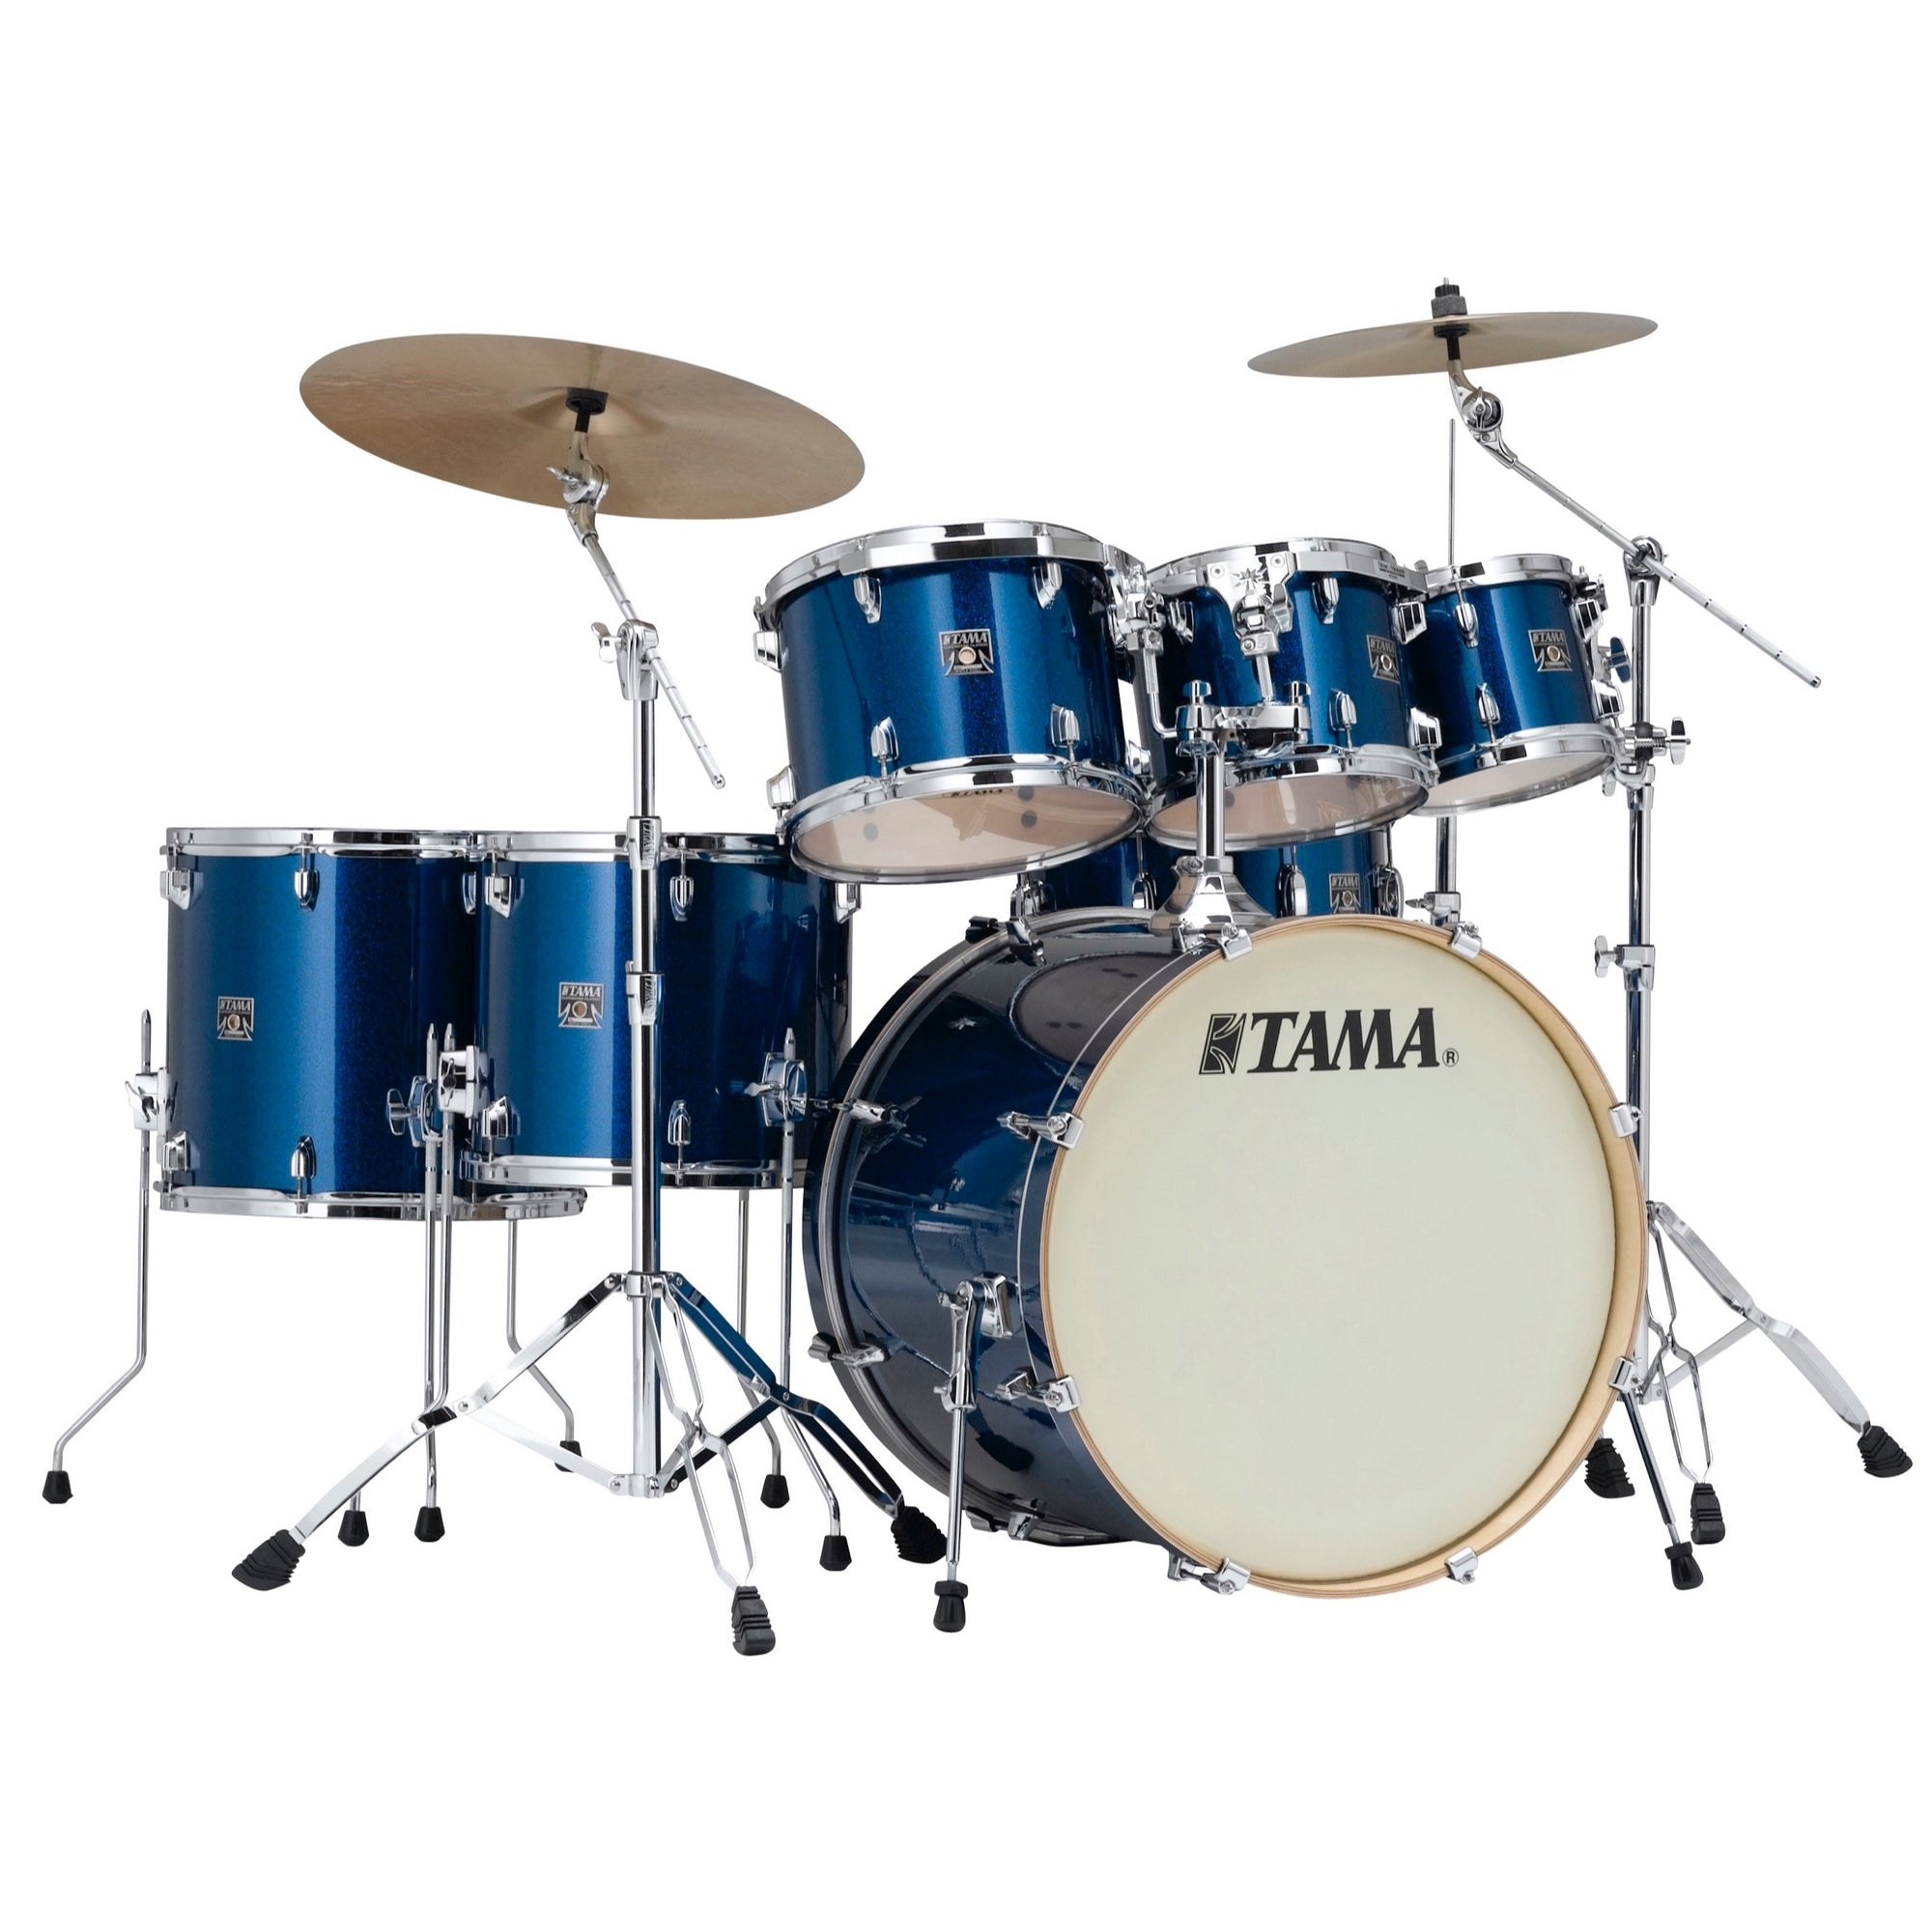 Tama CK72S Superstar Classic Drum Shell Kit, 7-Piece, Indigo Sparkle